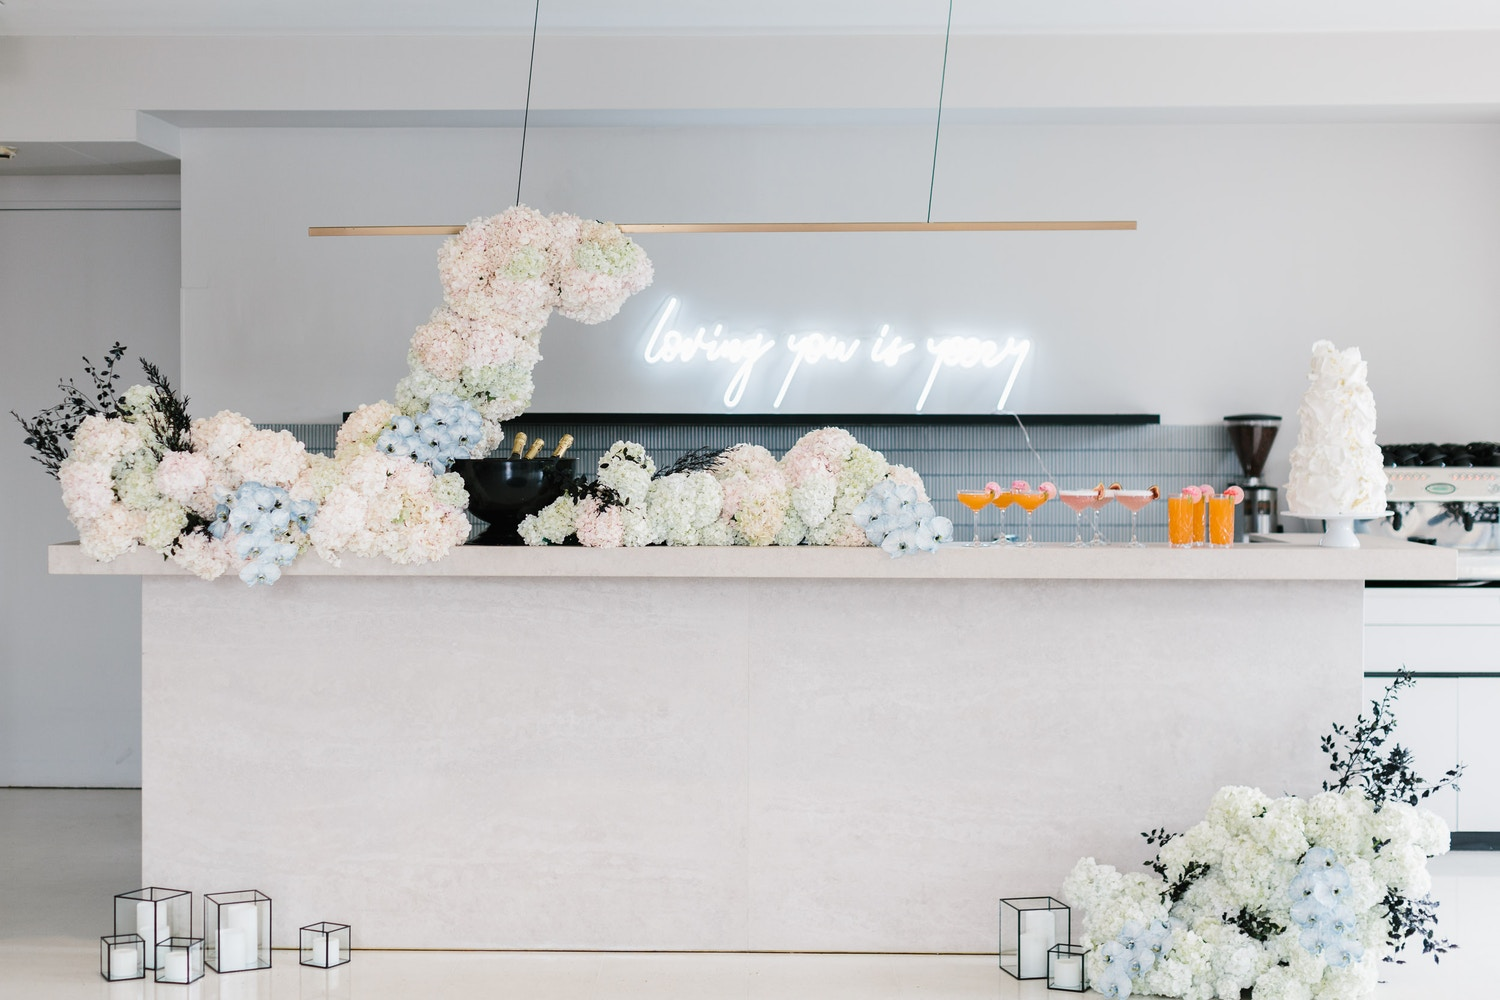 LOVING YOU IS YEEZY: AN URBAN LUXE WEDDING